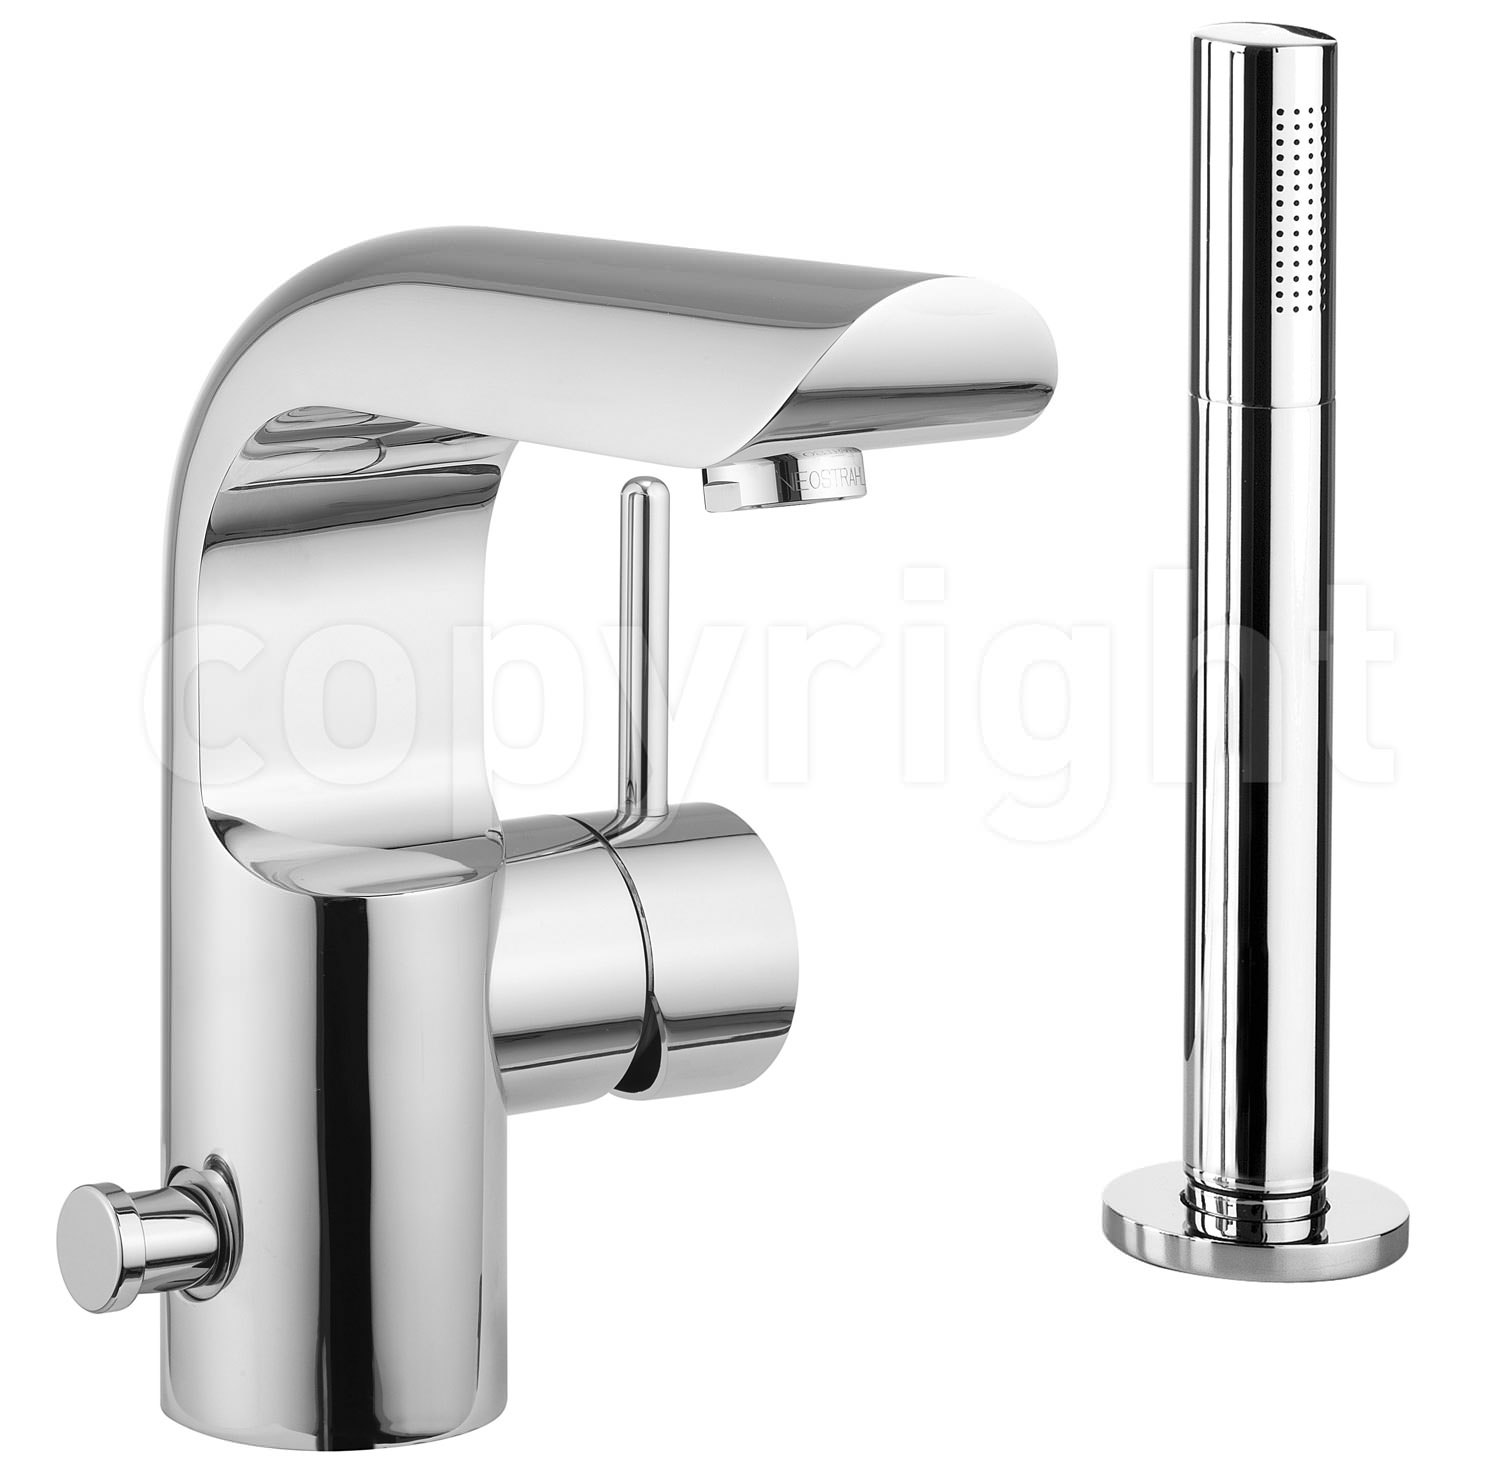 Crosswater elite monobloc bath shower mixer tap with kit for Bathroom taps